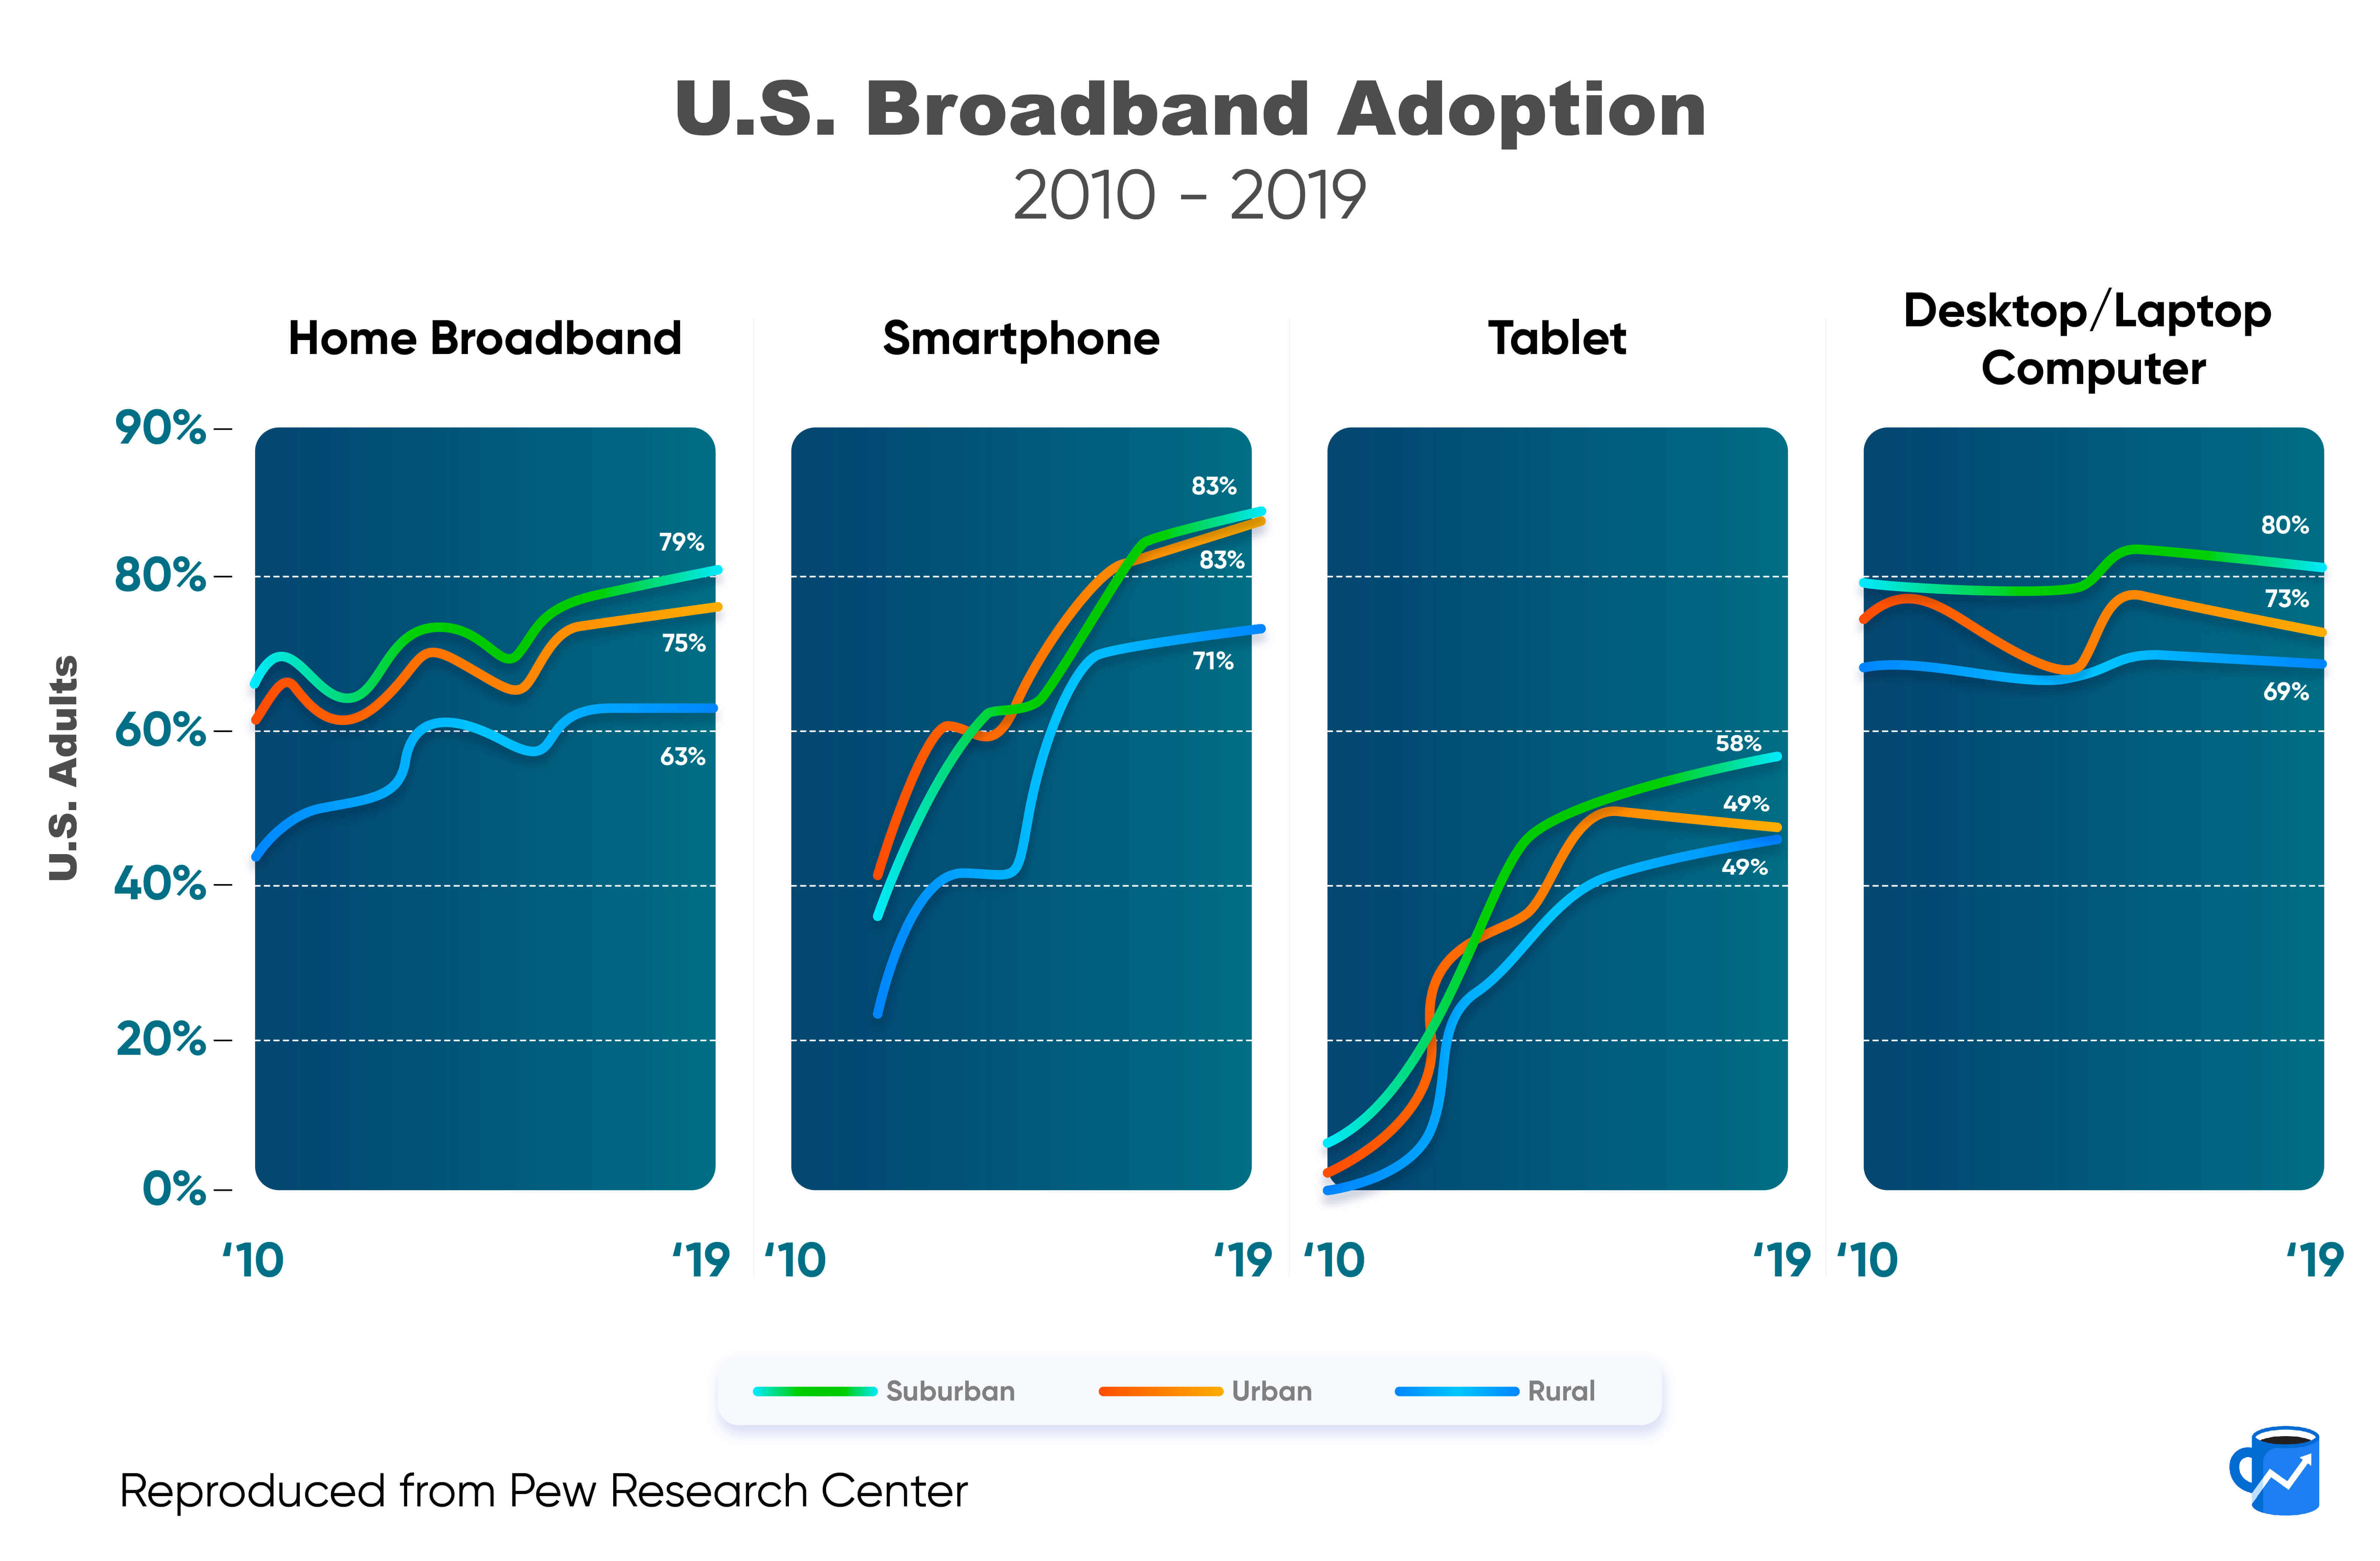 4 charts showing the percentage of U.S. adults with home broadband, smartphones, tablets, and personal computers